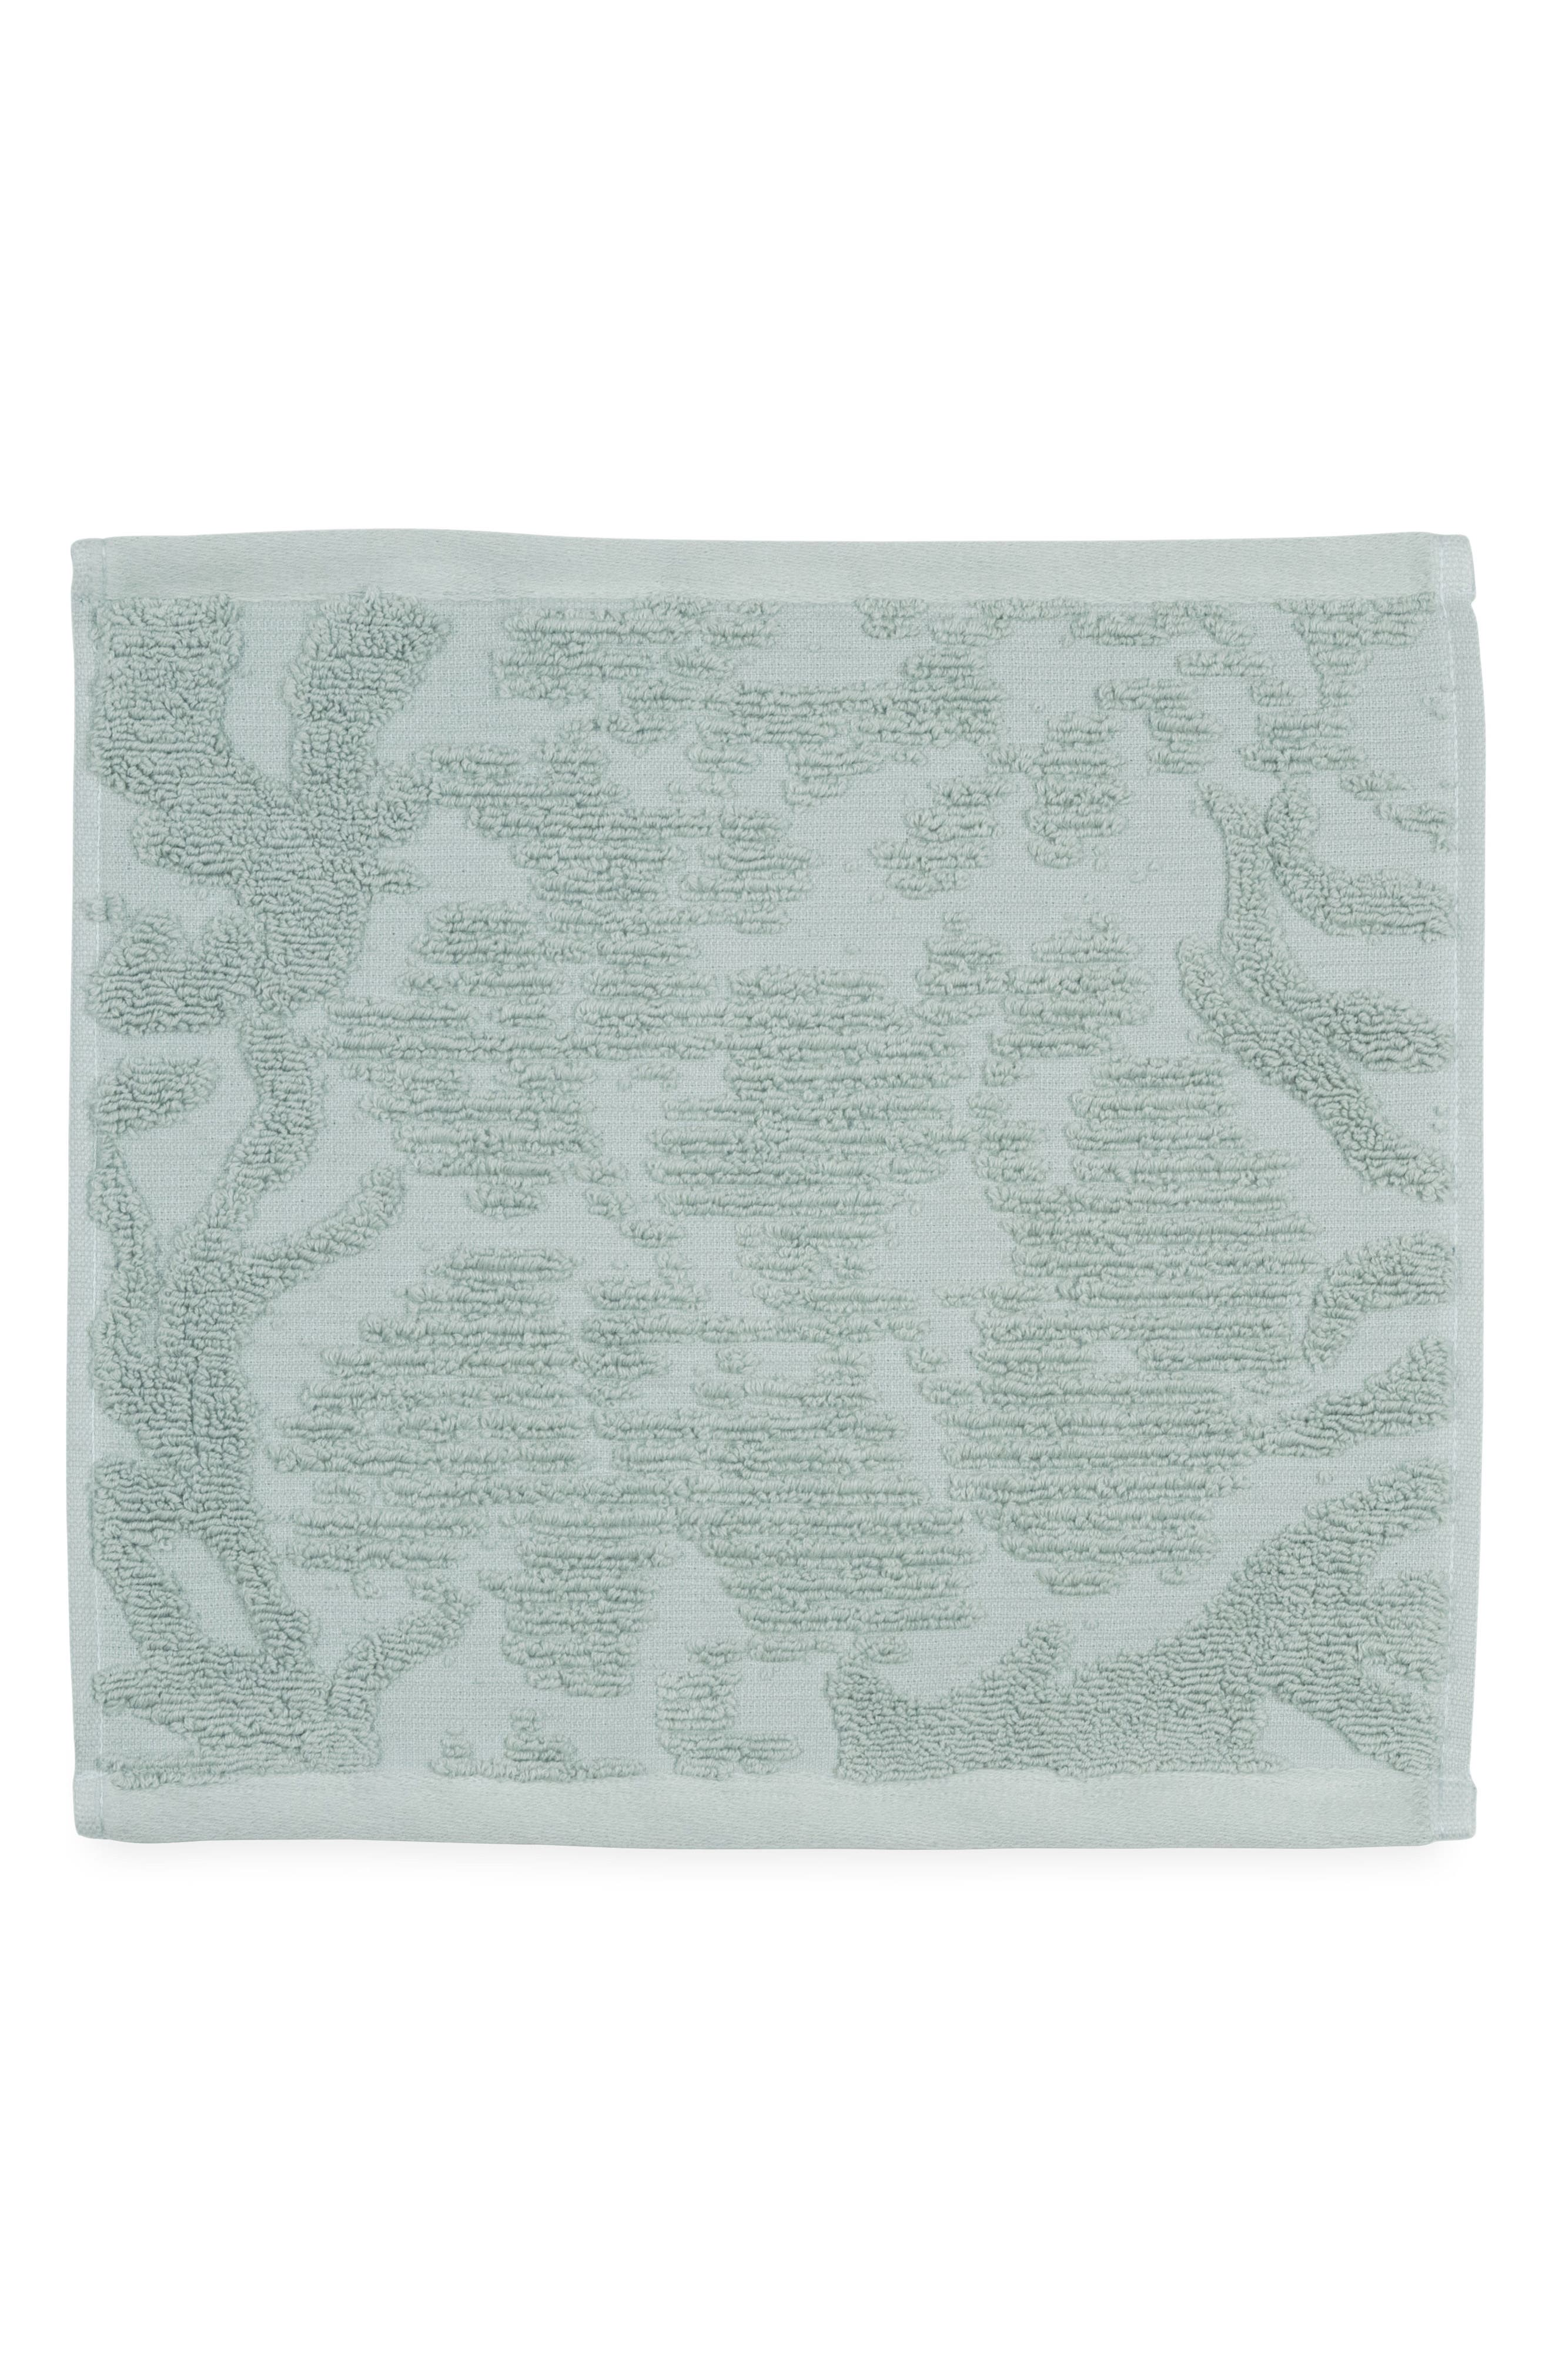 Ocean Reef Washcloth,                             Main thumbnail 1, color,                             Seafoam